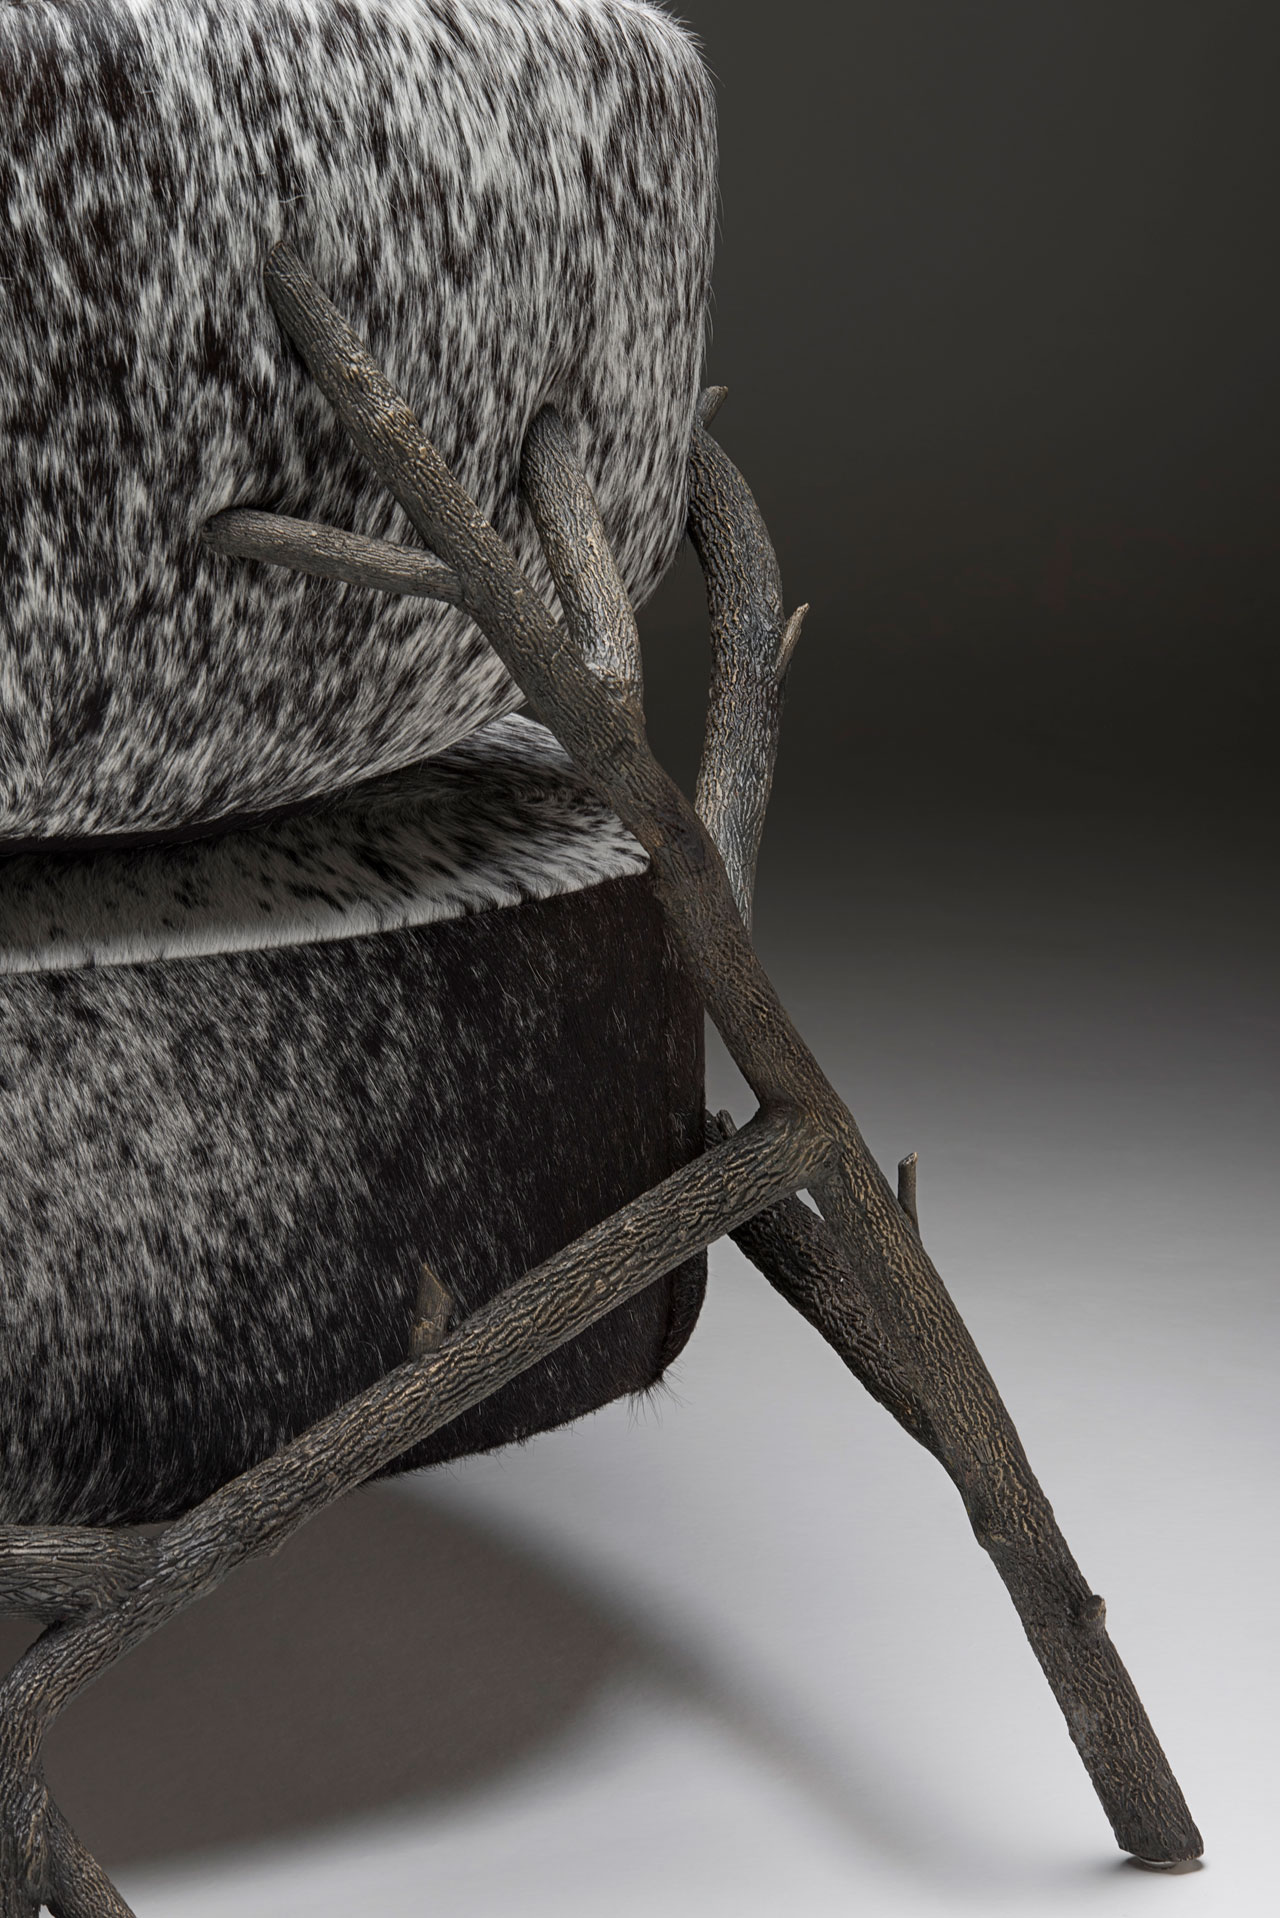 Galho armchair by Juliana Vasconcellos and Matheus Barreto for Nilufar Gallery.Custom upholstery upon request. Available also in alligator leather Bronze, cow leather / h 77 x w 79 x d 92 cm / h 30.3 x w 31.1 x d 36.2 in.